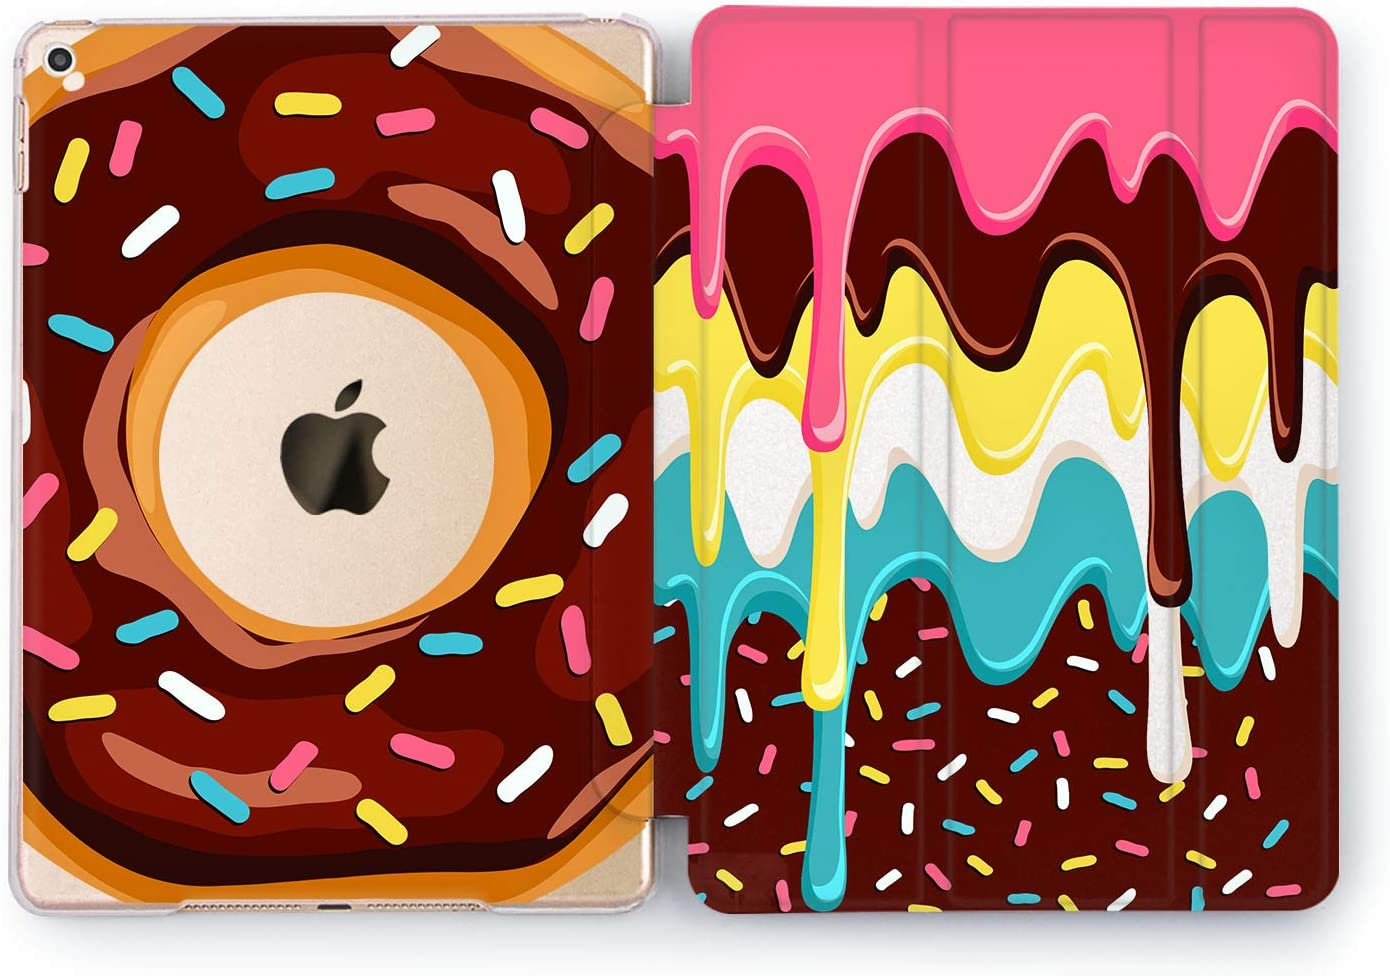 Wonder Wild Case Compatible with Apple iPad Sugar River Design 2 3 4 Pro 9.7 11 inch Mini 1 2 3 4 5 Air 2 10.5 12.9 11 10.2 5th 6th Gen Hard Cover Donuts Glaze Chocolate Sweets Cake Candies Bakery